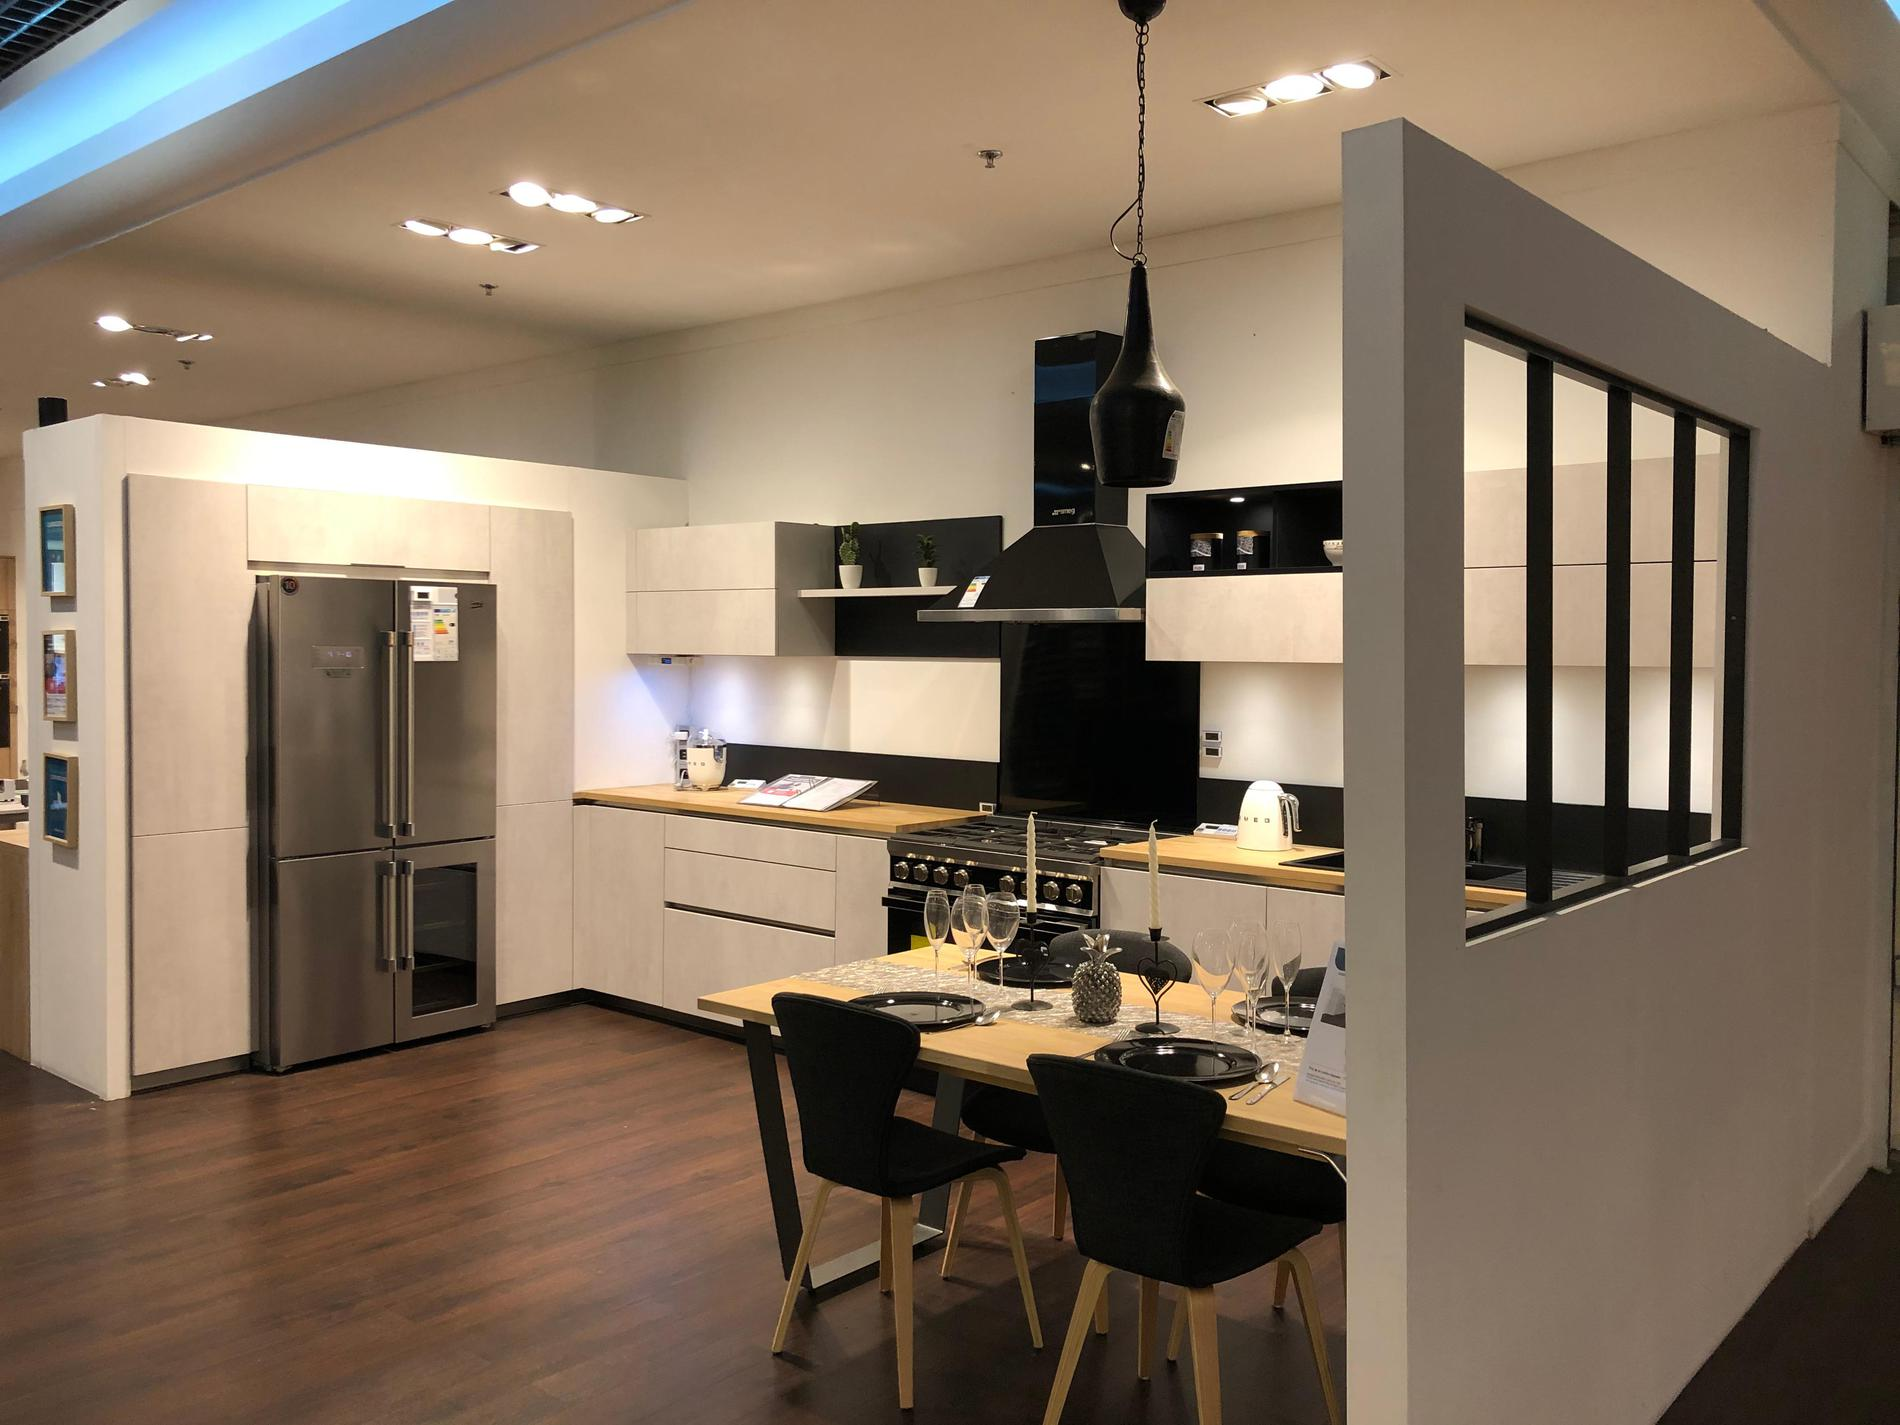 Cuisine Equipee Boulanger Dunkerque Grande Synthe Magasin